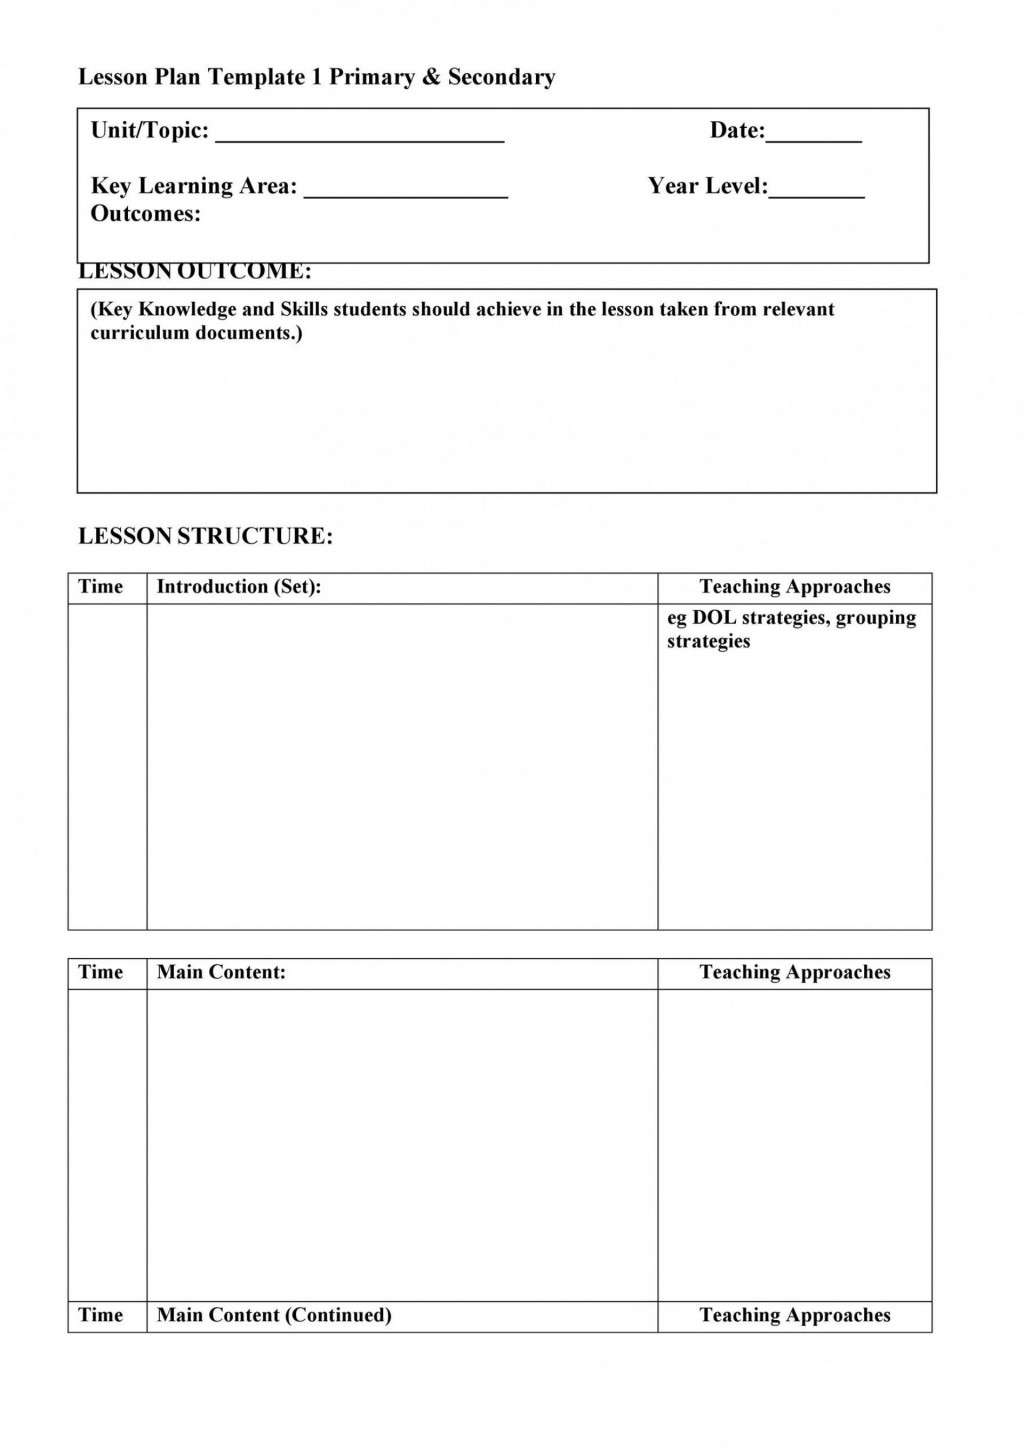 006 Dreaded Free Printable Lesson Plan Template For High School Sample Large